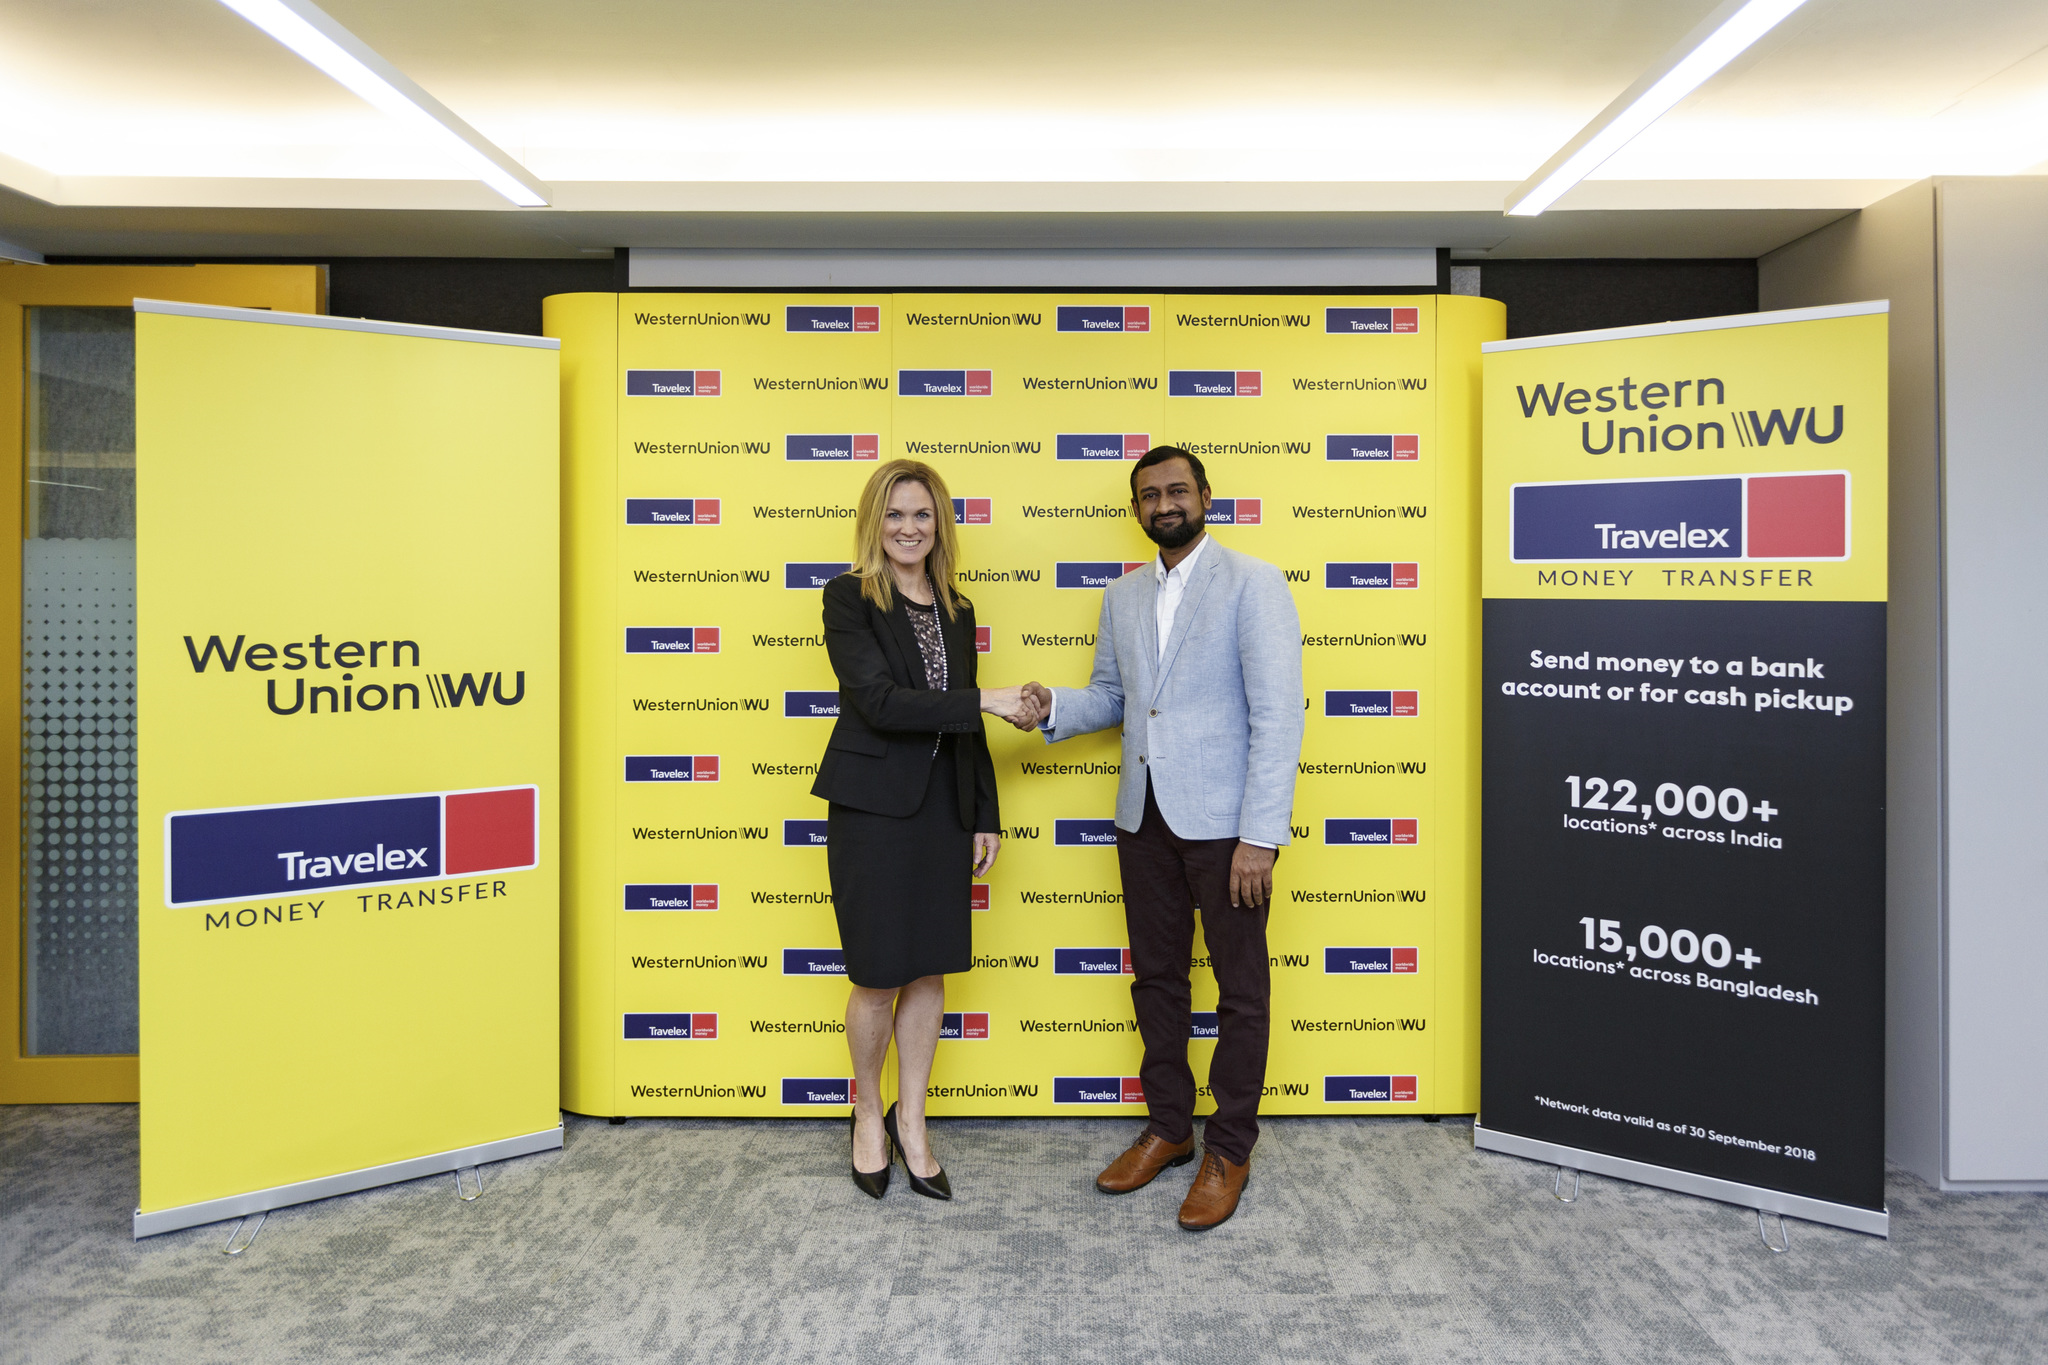 Molly Shea, Senior Vice President and General Manager, Global Money Transfer, Asia Pacific, Western Union and Lakskmi Narayan S, Travelex's Global Head of Remittances sealing the deal on behalf of the two companies which will help co-locating Western Union money transfer services within worker dormitories across Singapore. Photo courtesy: Western Union